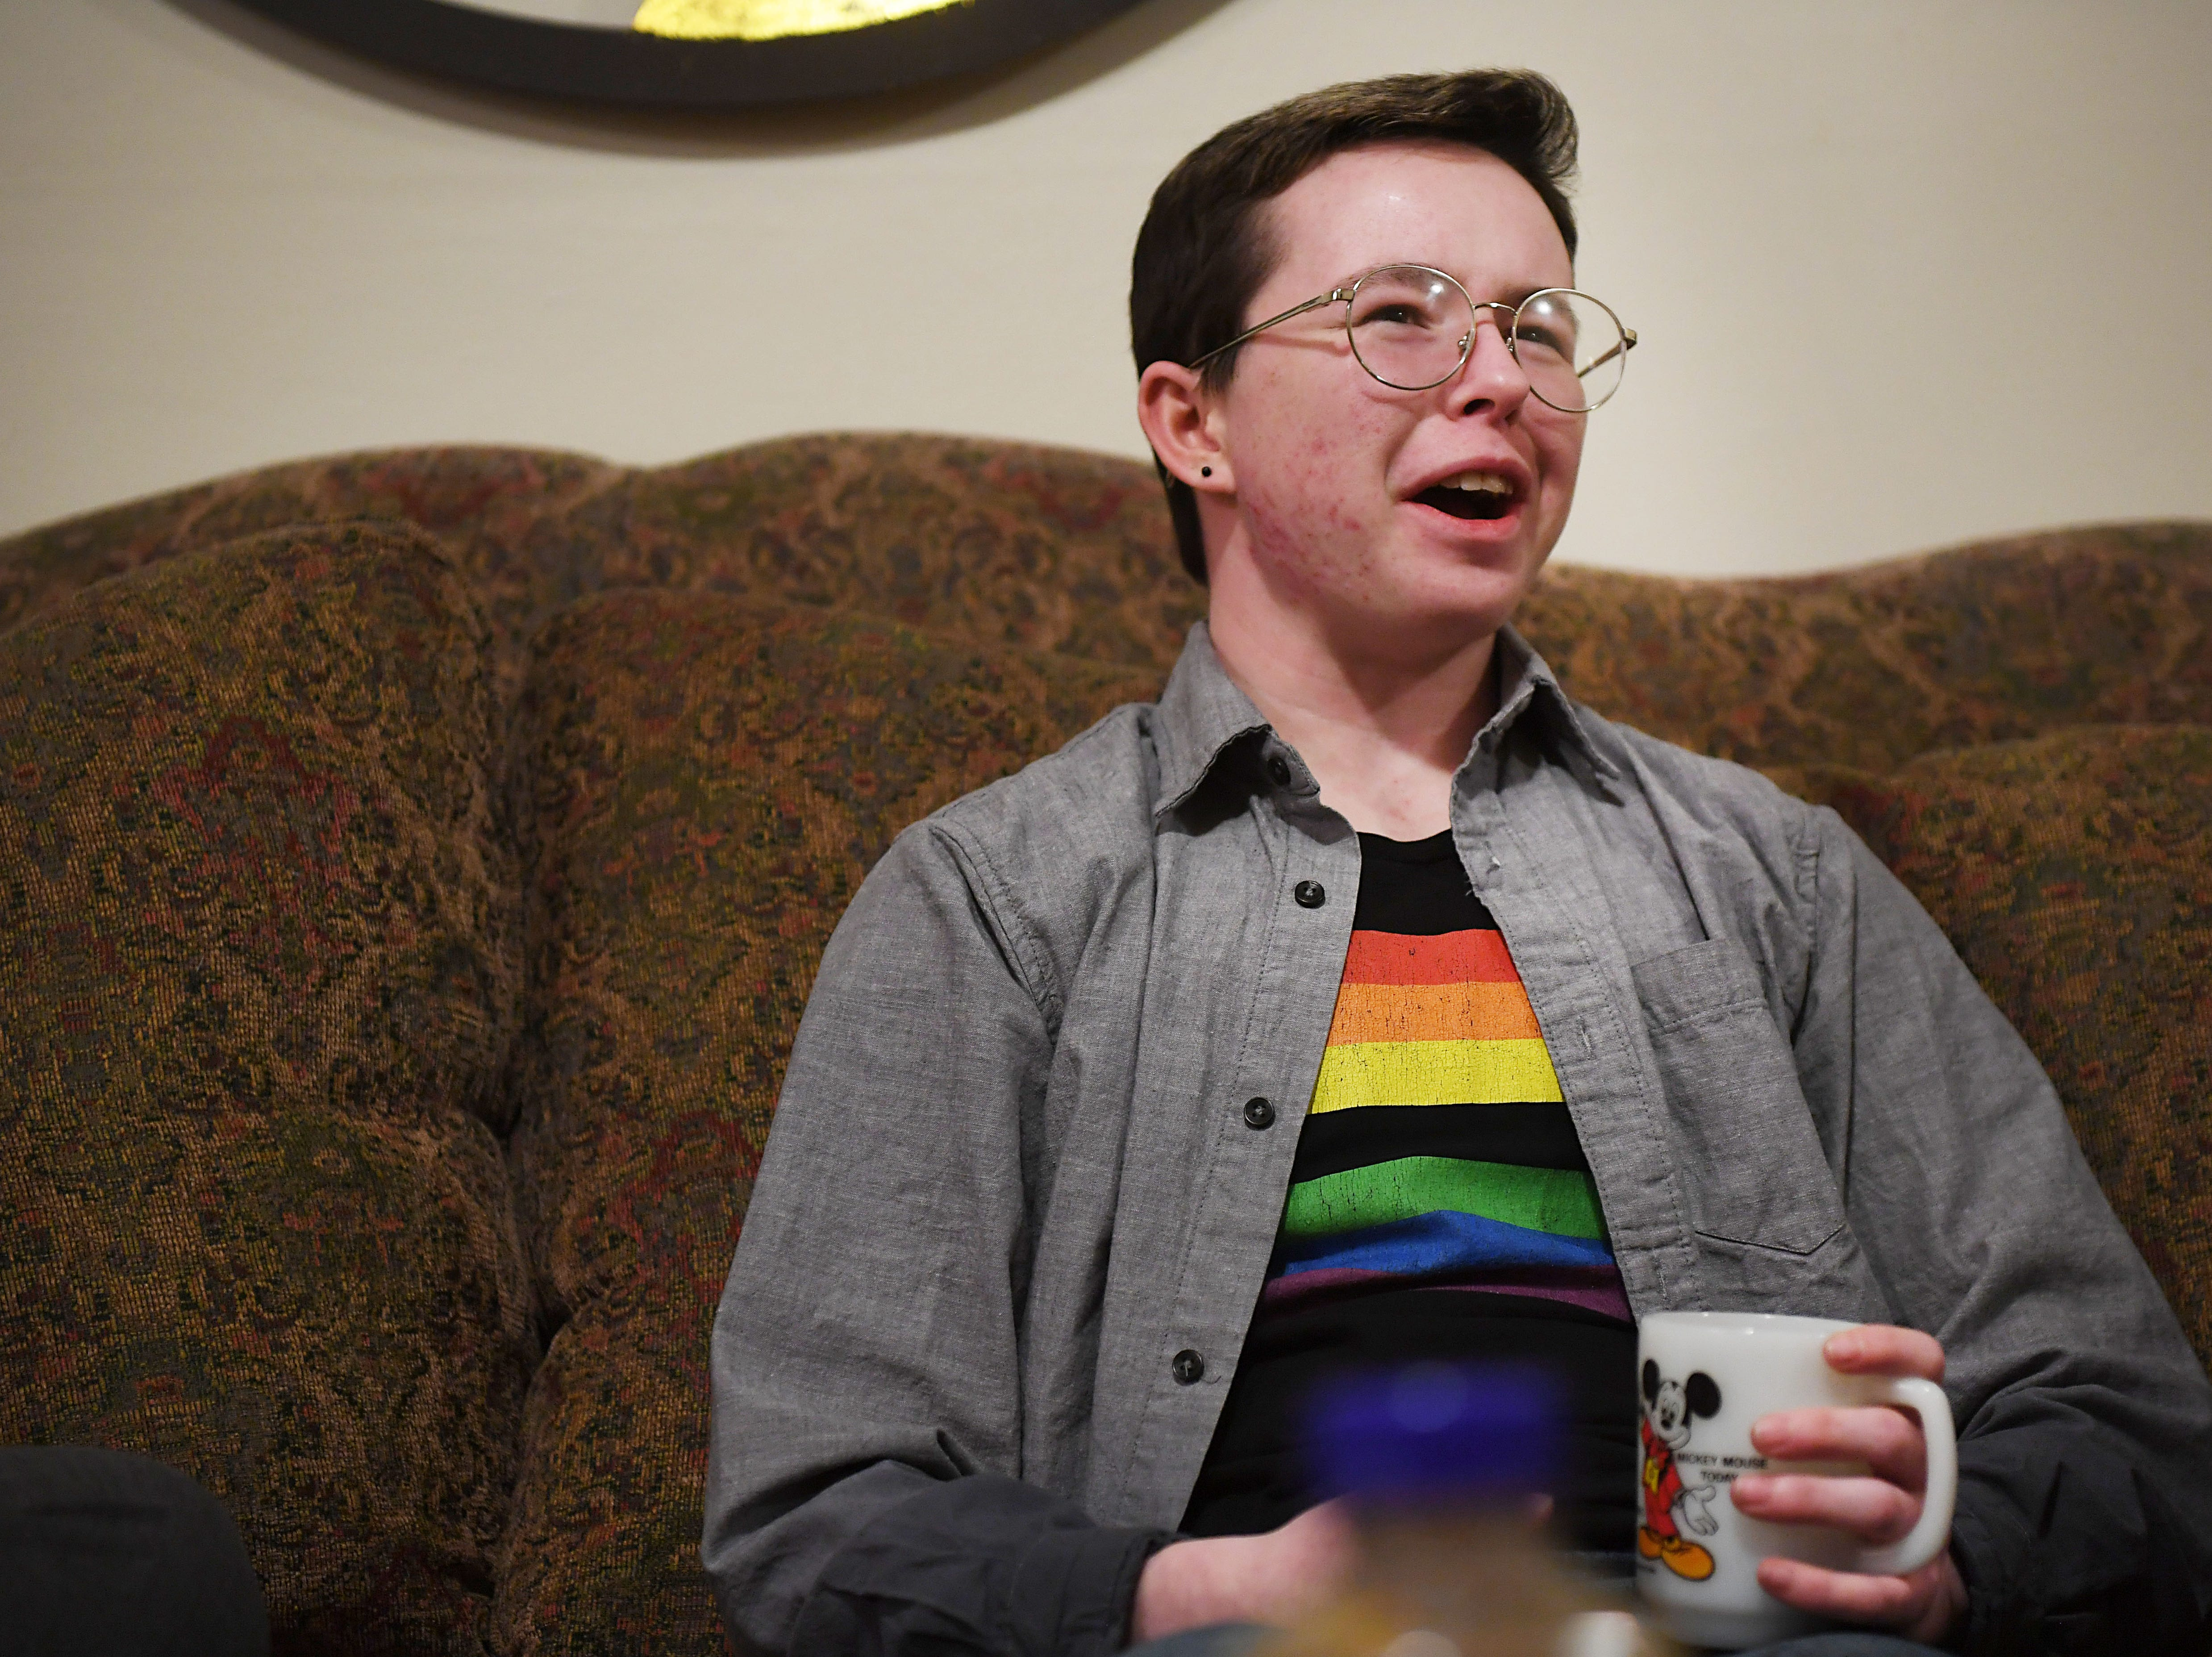 Oliver Dickman talks about the misconceptions people have about transgender people on Monday, Feb. 25, in Yankton.